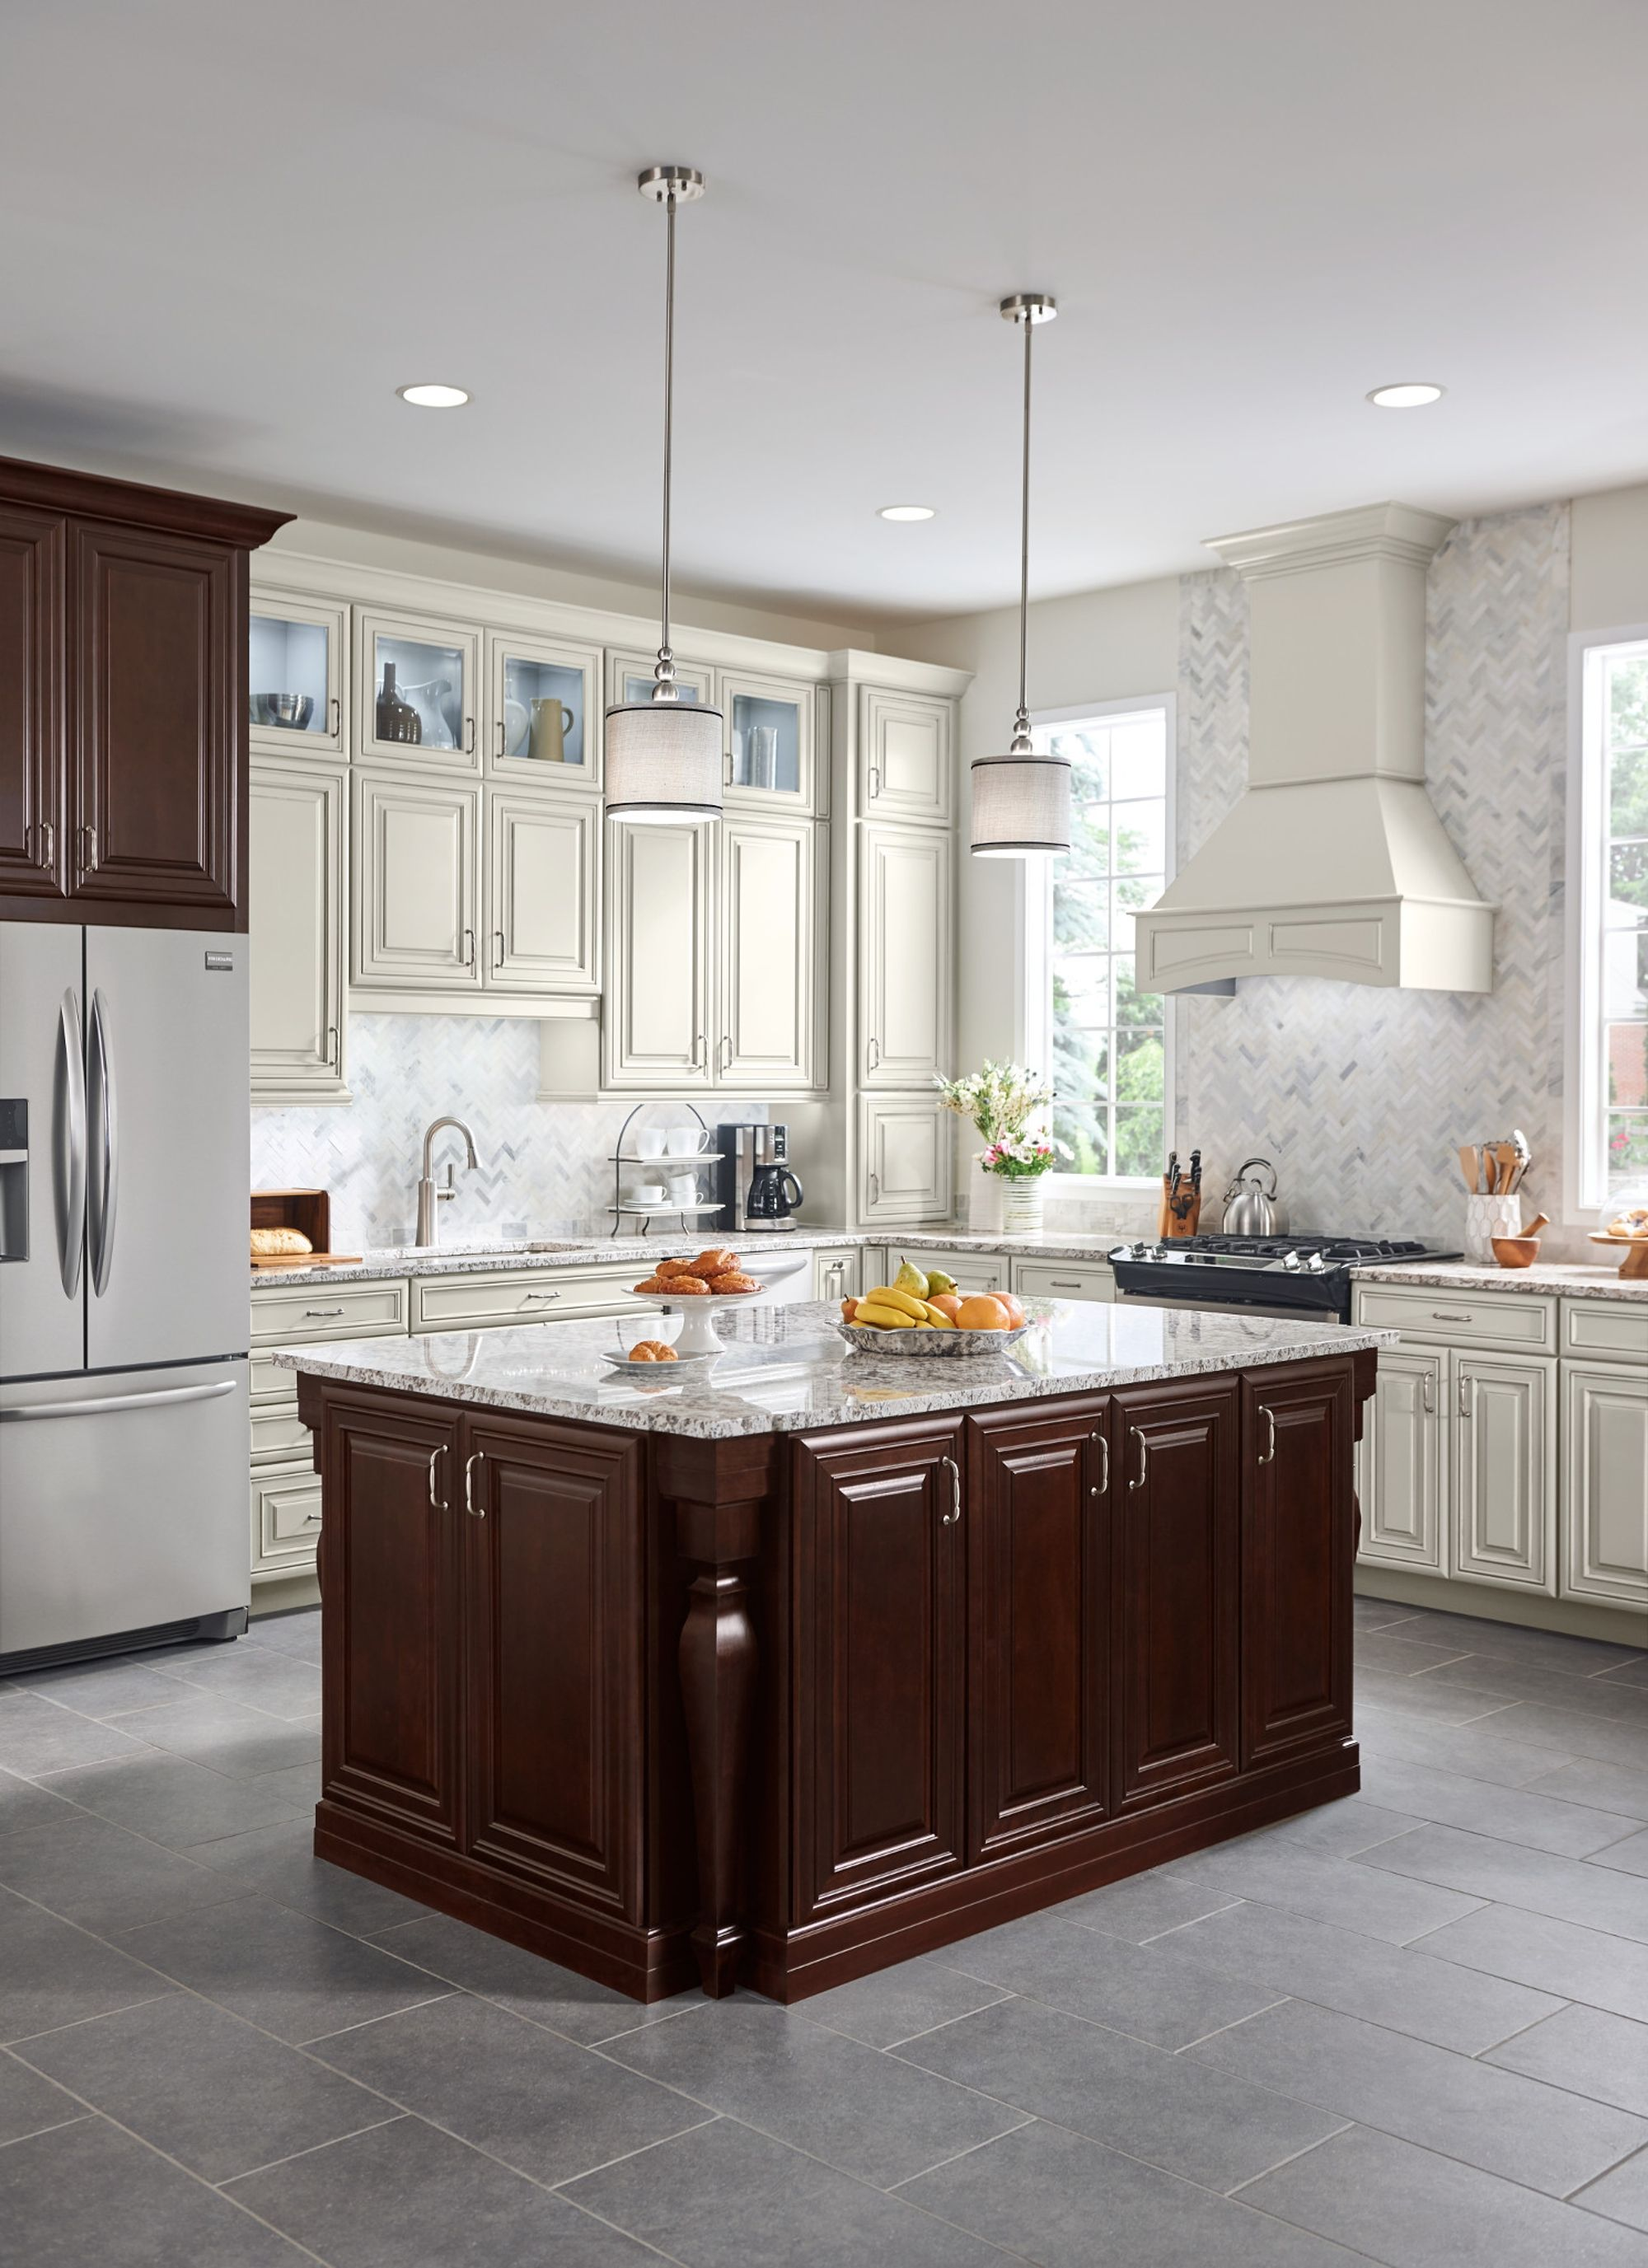 Mocha Glaze Kitchen Cabinets Mitered Cabinet Doors Westfall In